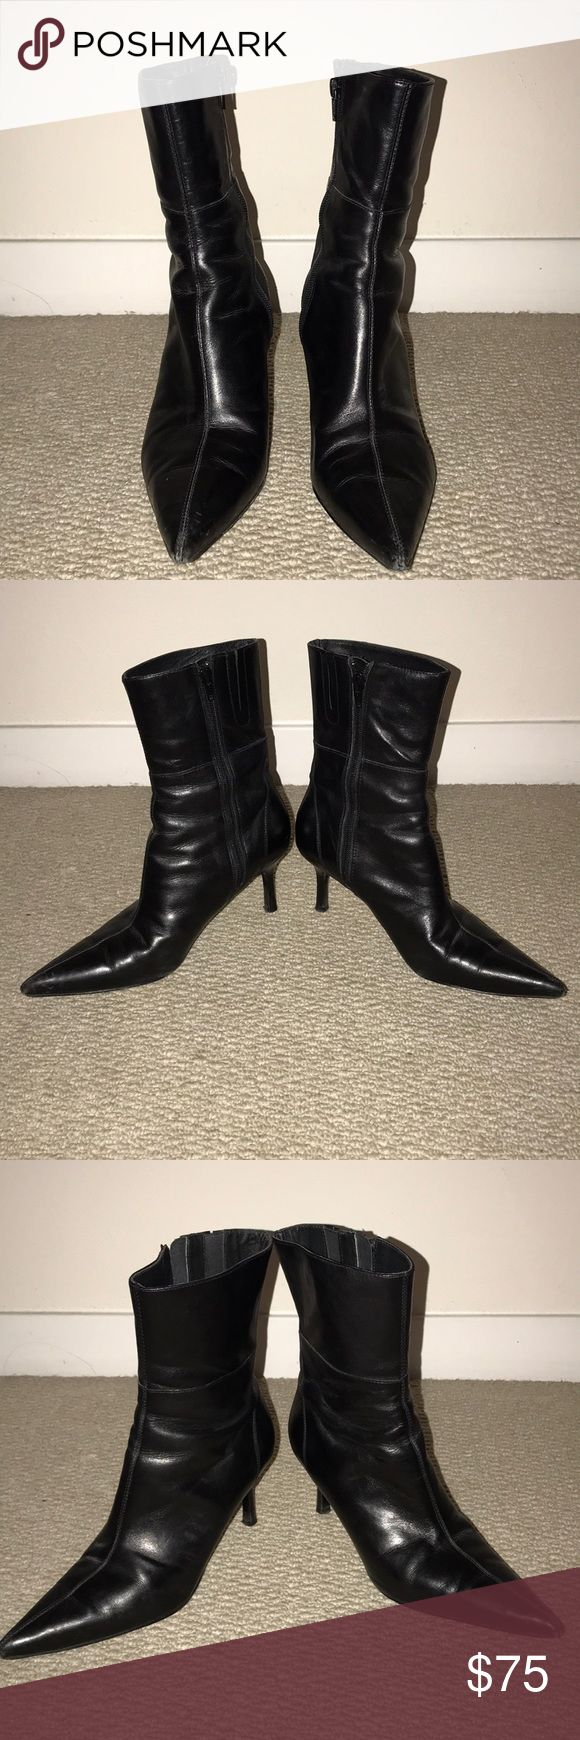 Charles David Boots Used black heeled boots that goes up to mid shin by Charles David. Size 7.5B Worn several times but still in good condition. Charles David Shoes Heeled Boots